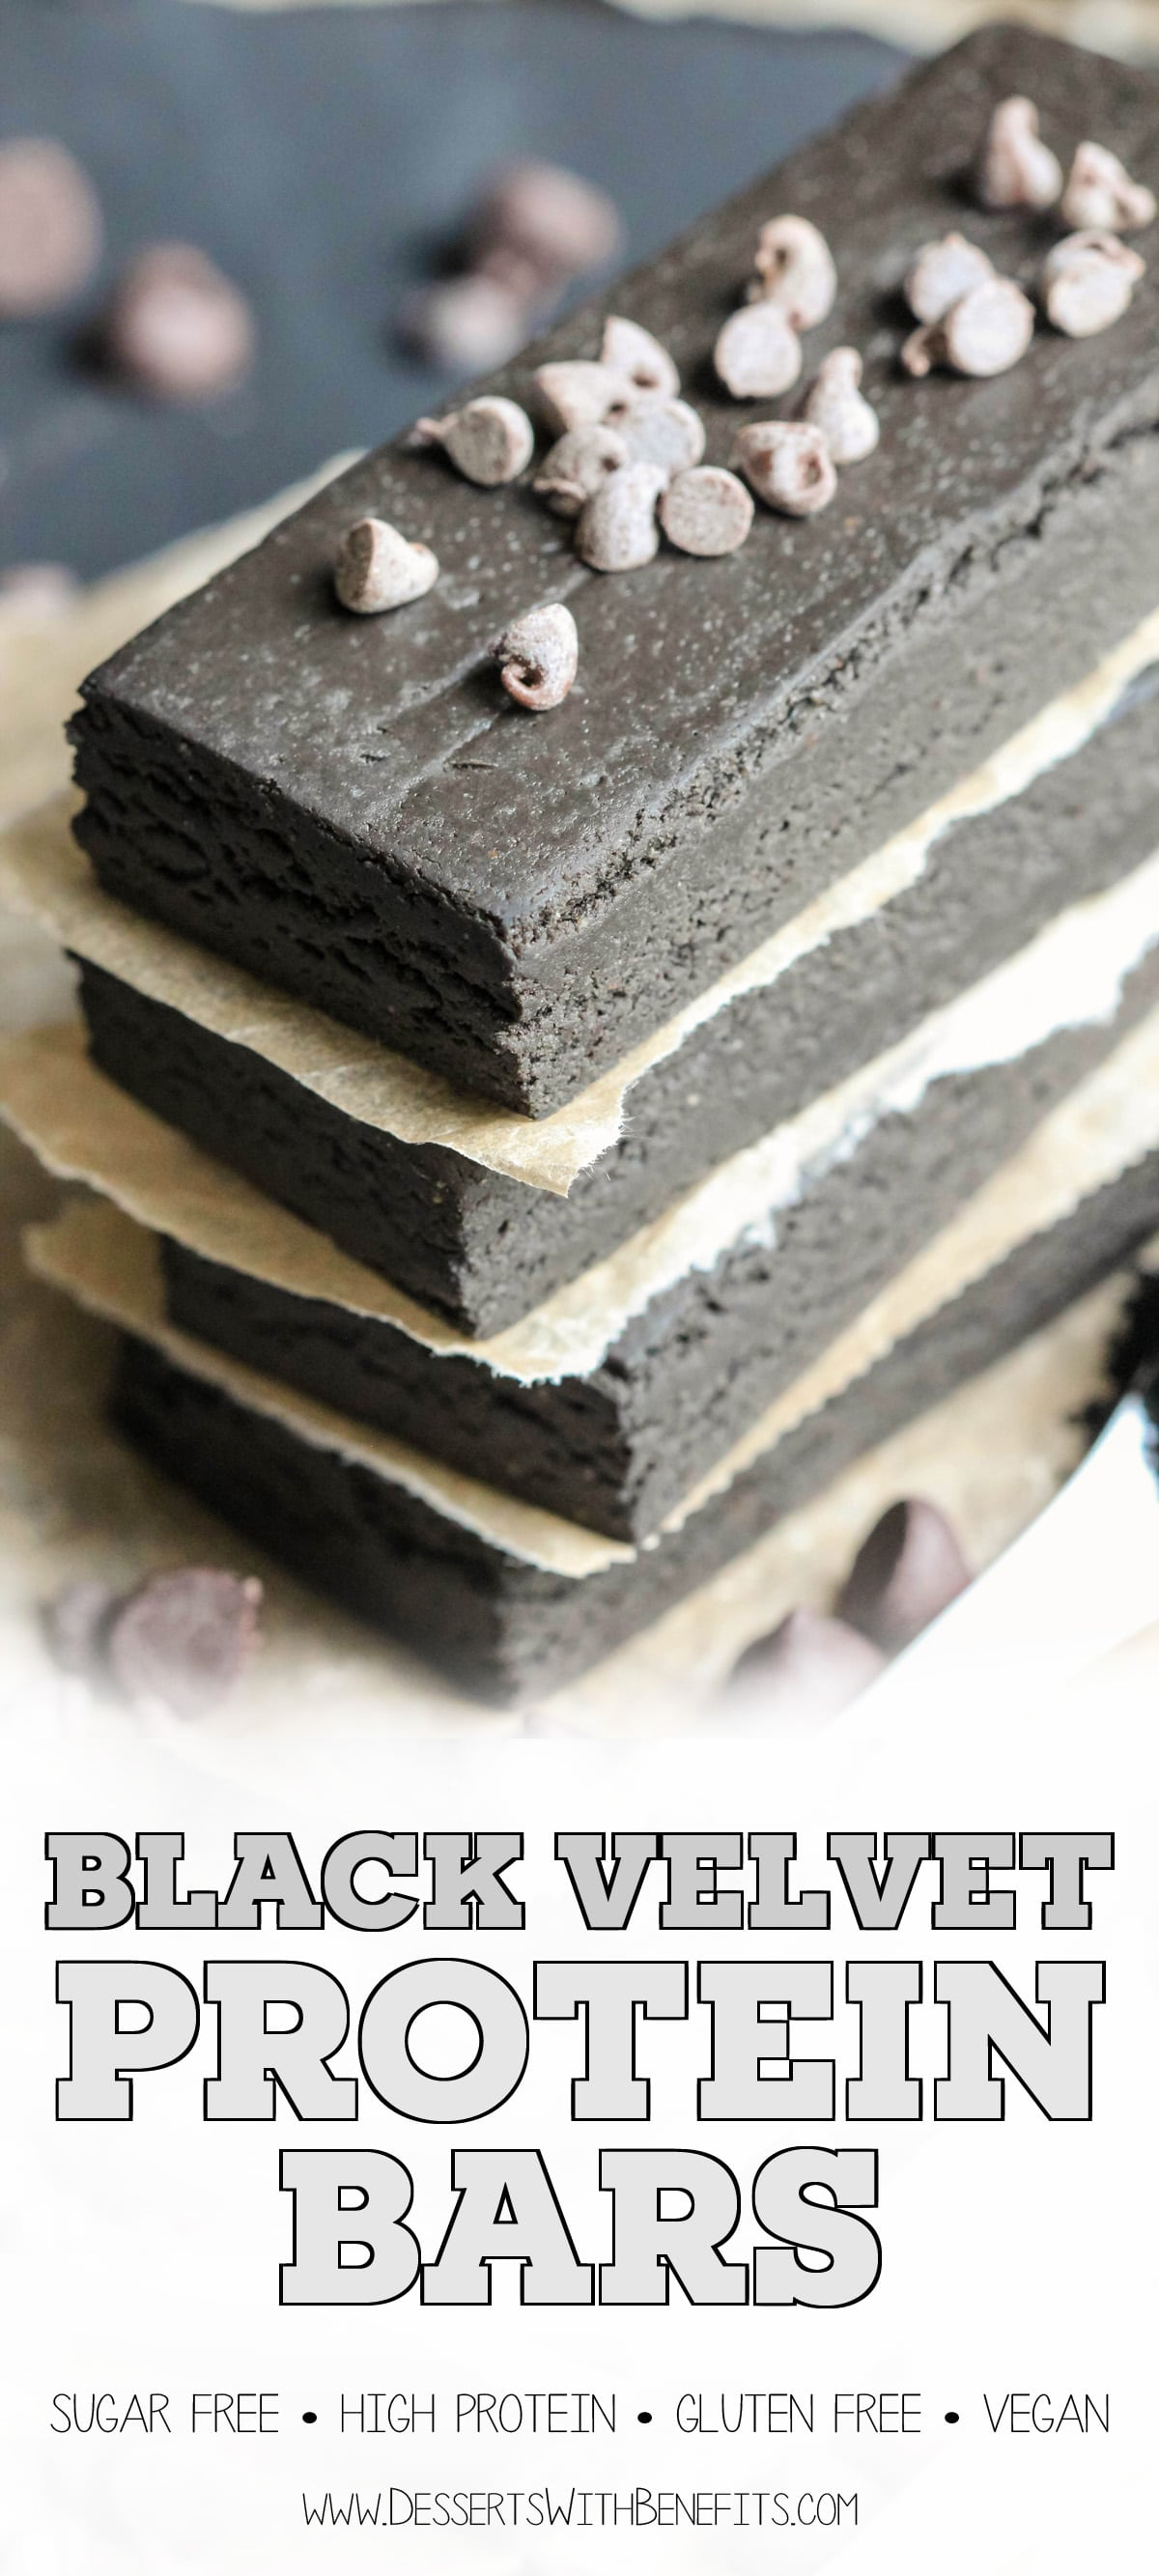 Black Velvet is just like red velvet, only black! These sweet, fudgy, chocolatey Healthy Black Velvet DIY Protein Bars are all natural, sugar free, high protein, gluten free, dairy free AND vegan, but you'd never know it. Can you guess the secret ingredient? -- Healthy Dessert Recipes with sugar free, low calorie, low fat, high protein, gluten free, dairy free, vegan, and raw options at the Desserts With Benefits Blog (www.DessertsWithBenefits.com)